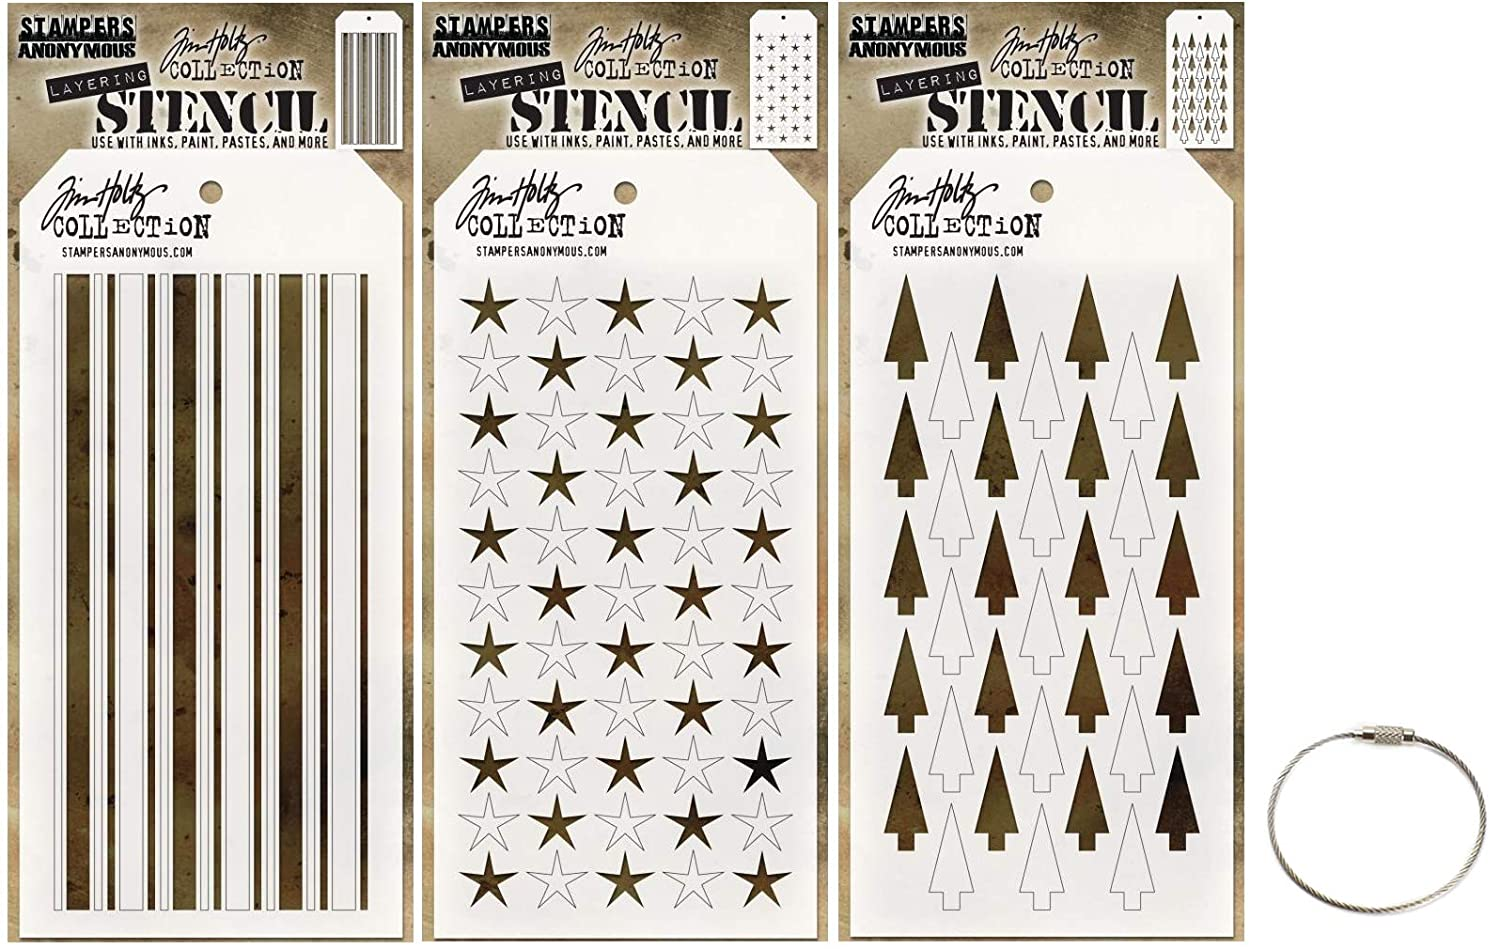 Tim Holtz Shifter Stencils - Shifter Mint, Shifter Stars and Shifter Tree - Winter 2018 Set Includes Cable Ring - 4 Items Stampers Anonymous